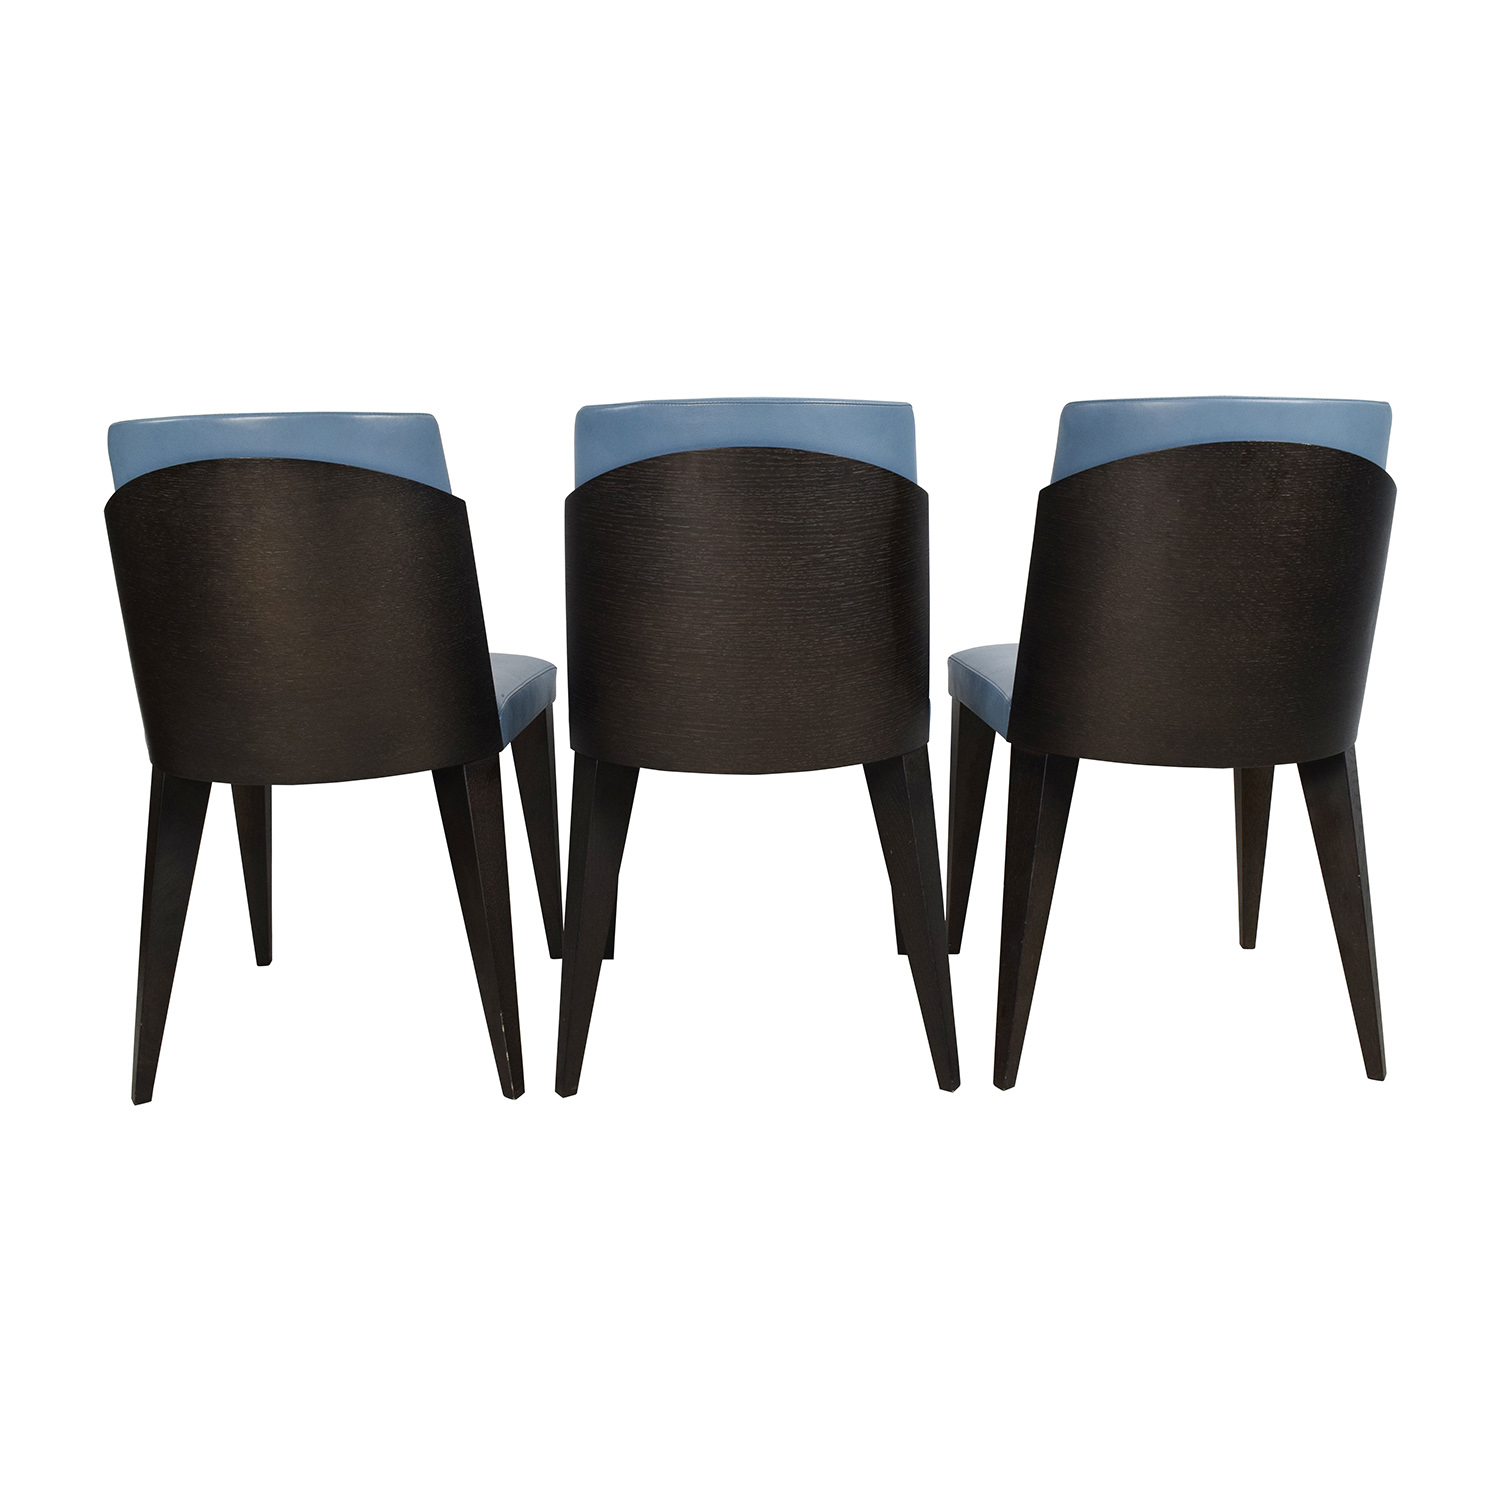 90 off potocco potocco blue leather dining chairs chairs for Furniture 90 off